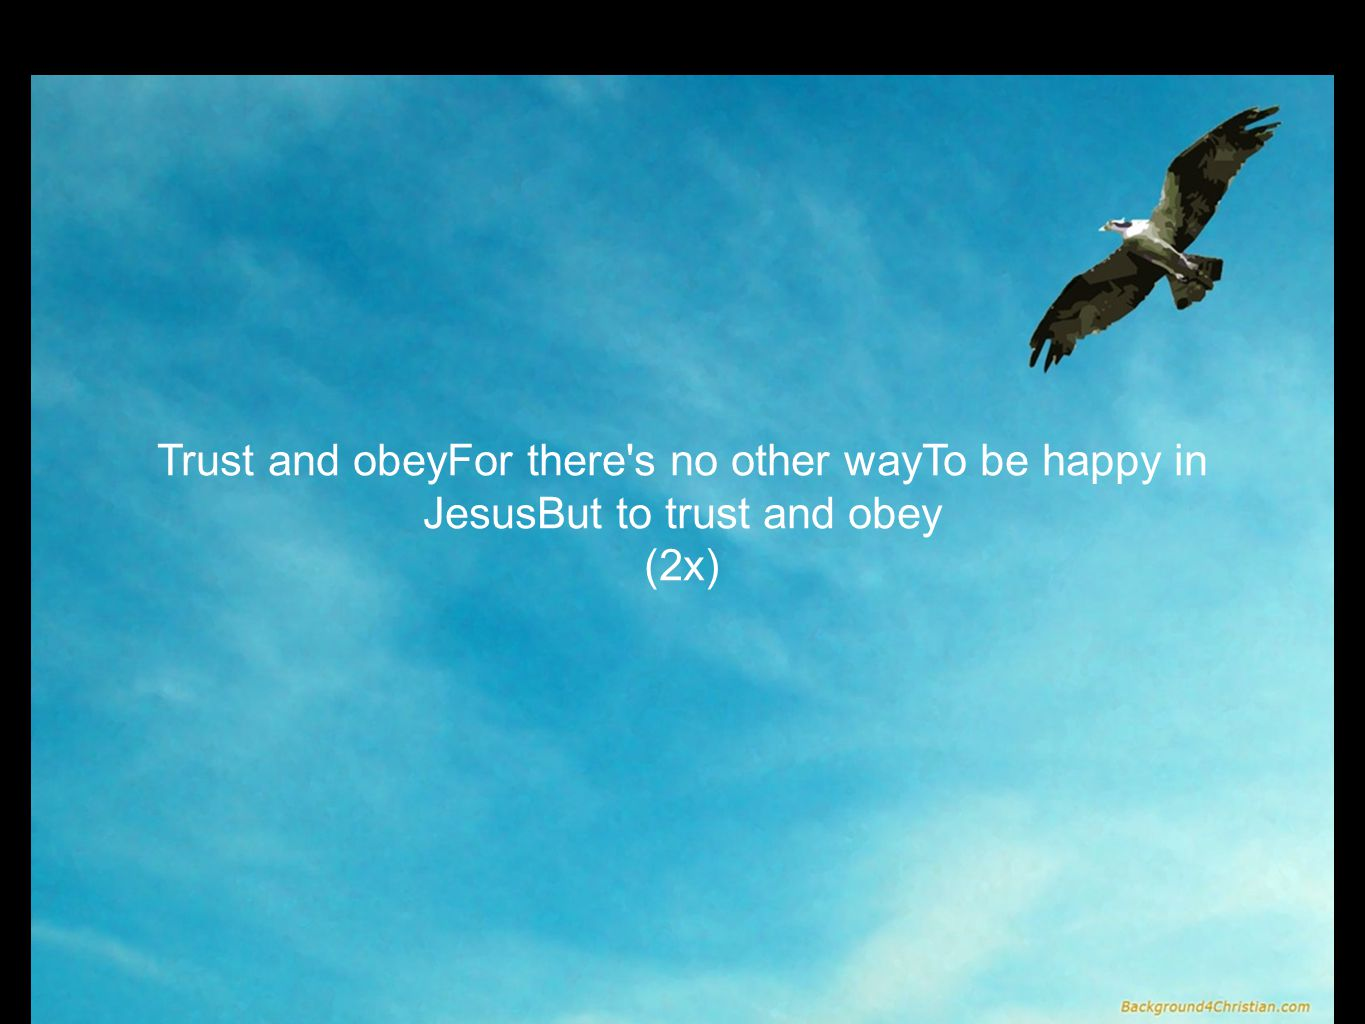 Trust and obeyFor there's no other wayTo be happy in JesusBut to trust and obey (2x)